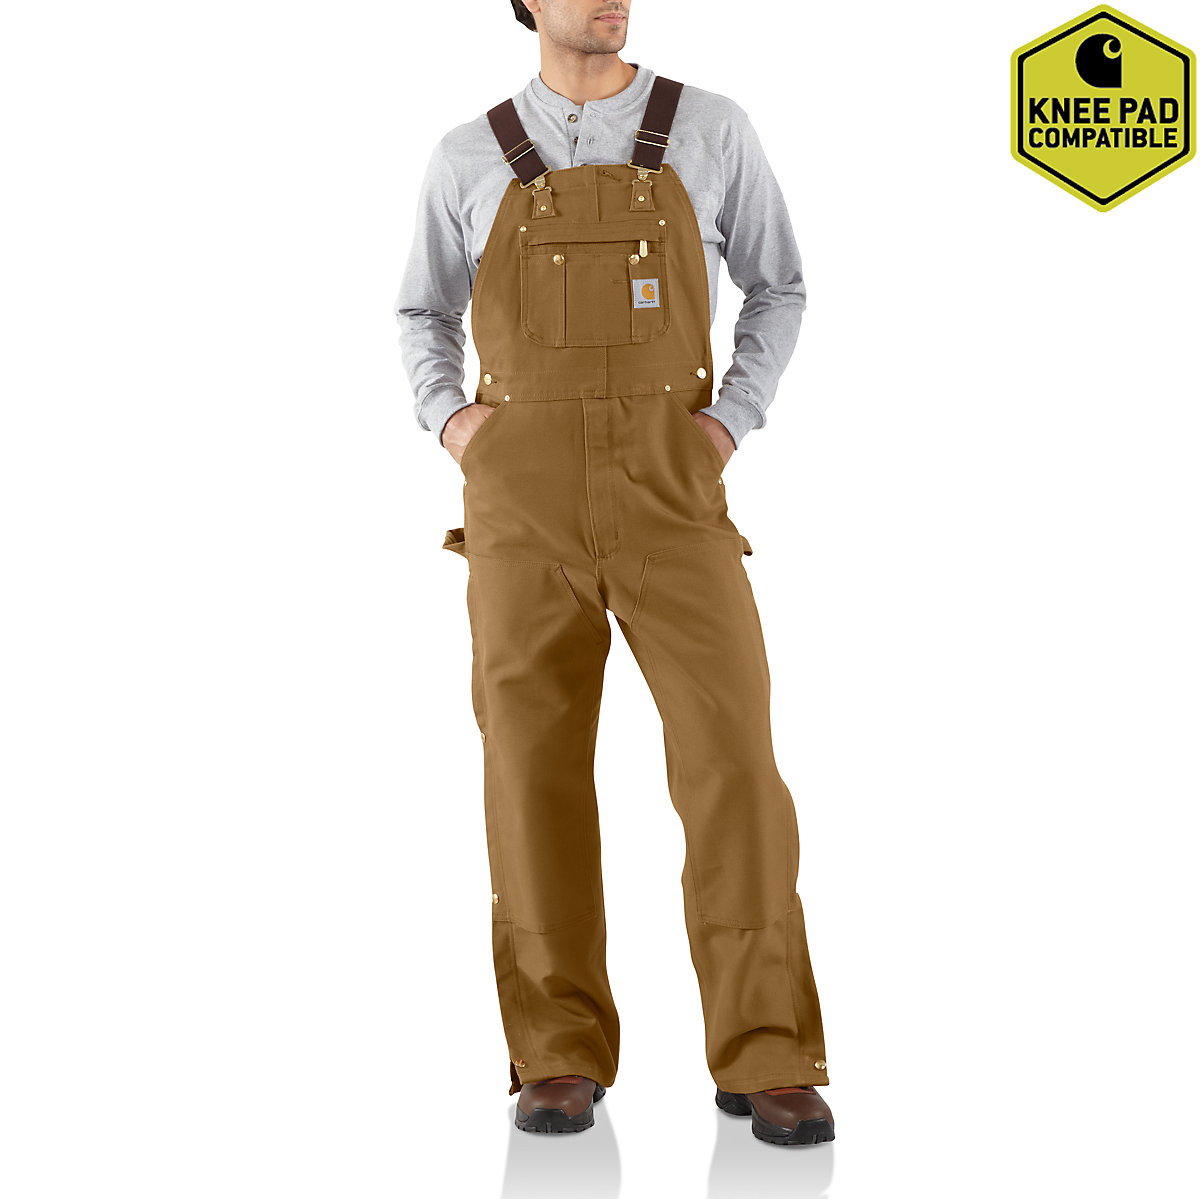 Men S Duck Zip To Thigh Bib Overall Unlined R37 Carhartt